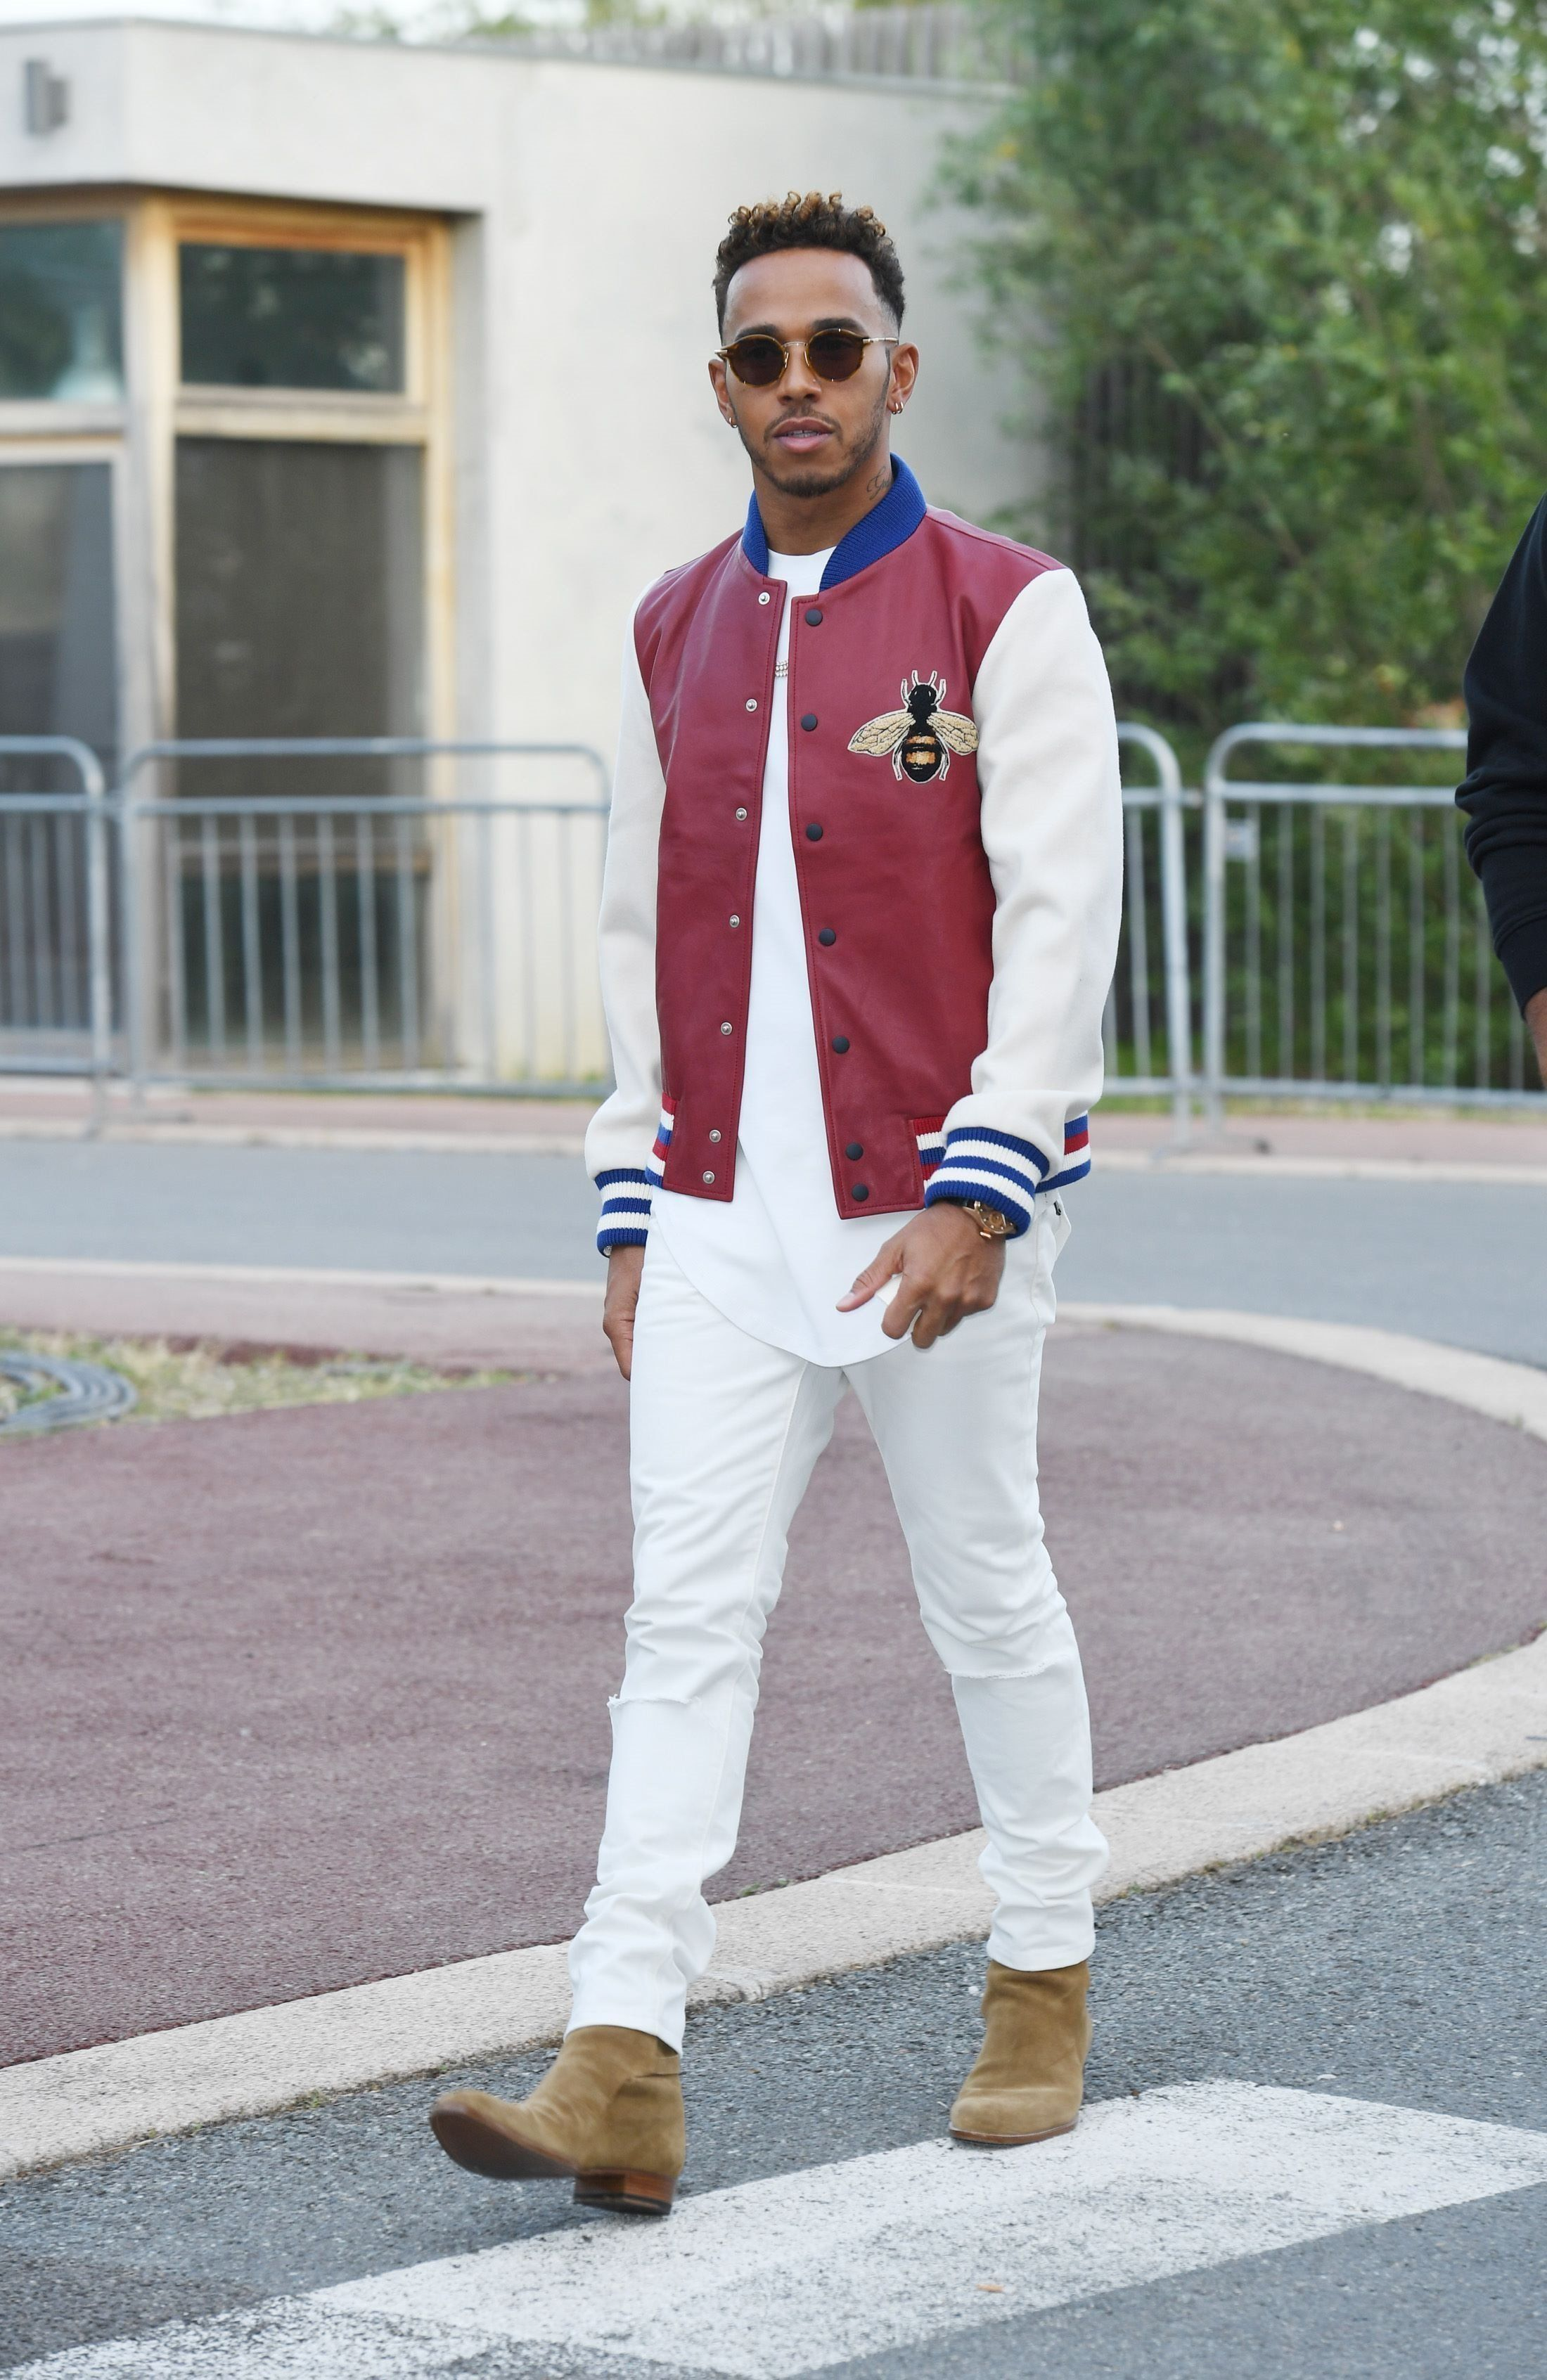 e7098d109f43 Lewis Hamilton wears a Gucci jacket   Saint Laurent boots as he arrives at  a charity gala in Cannes.  cannes2017  racecar  brands